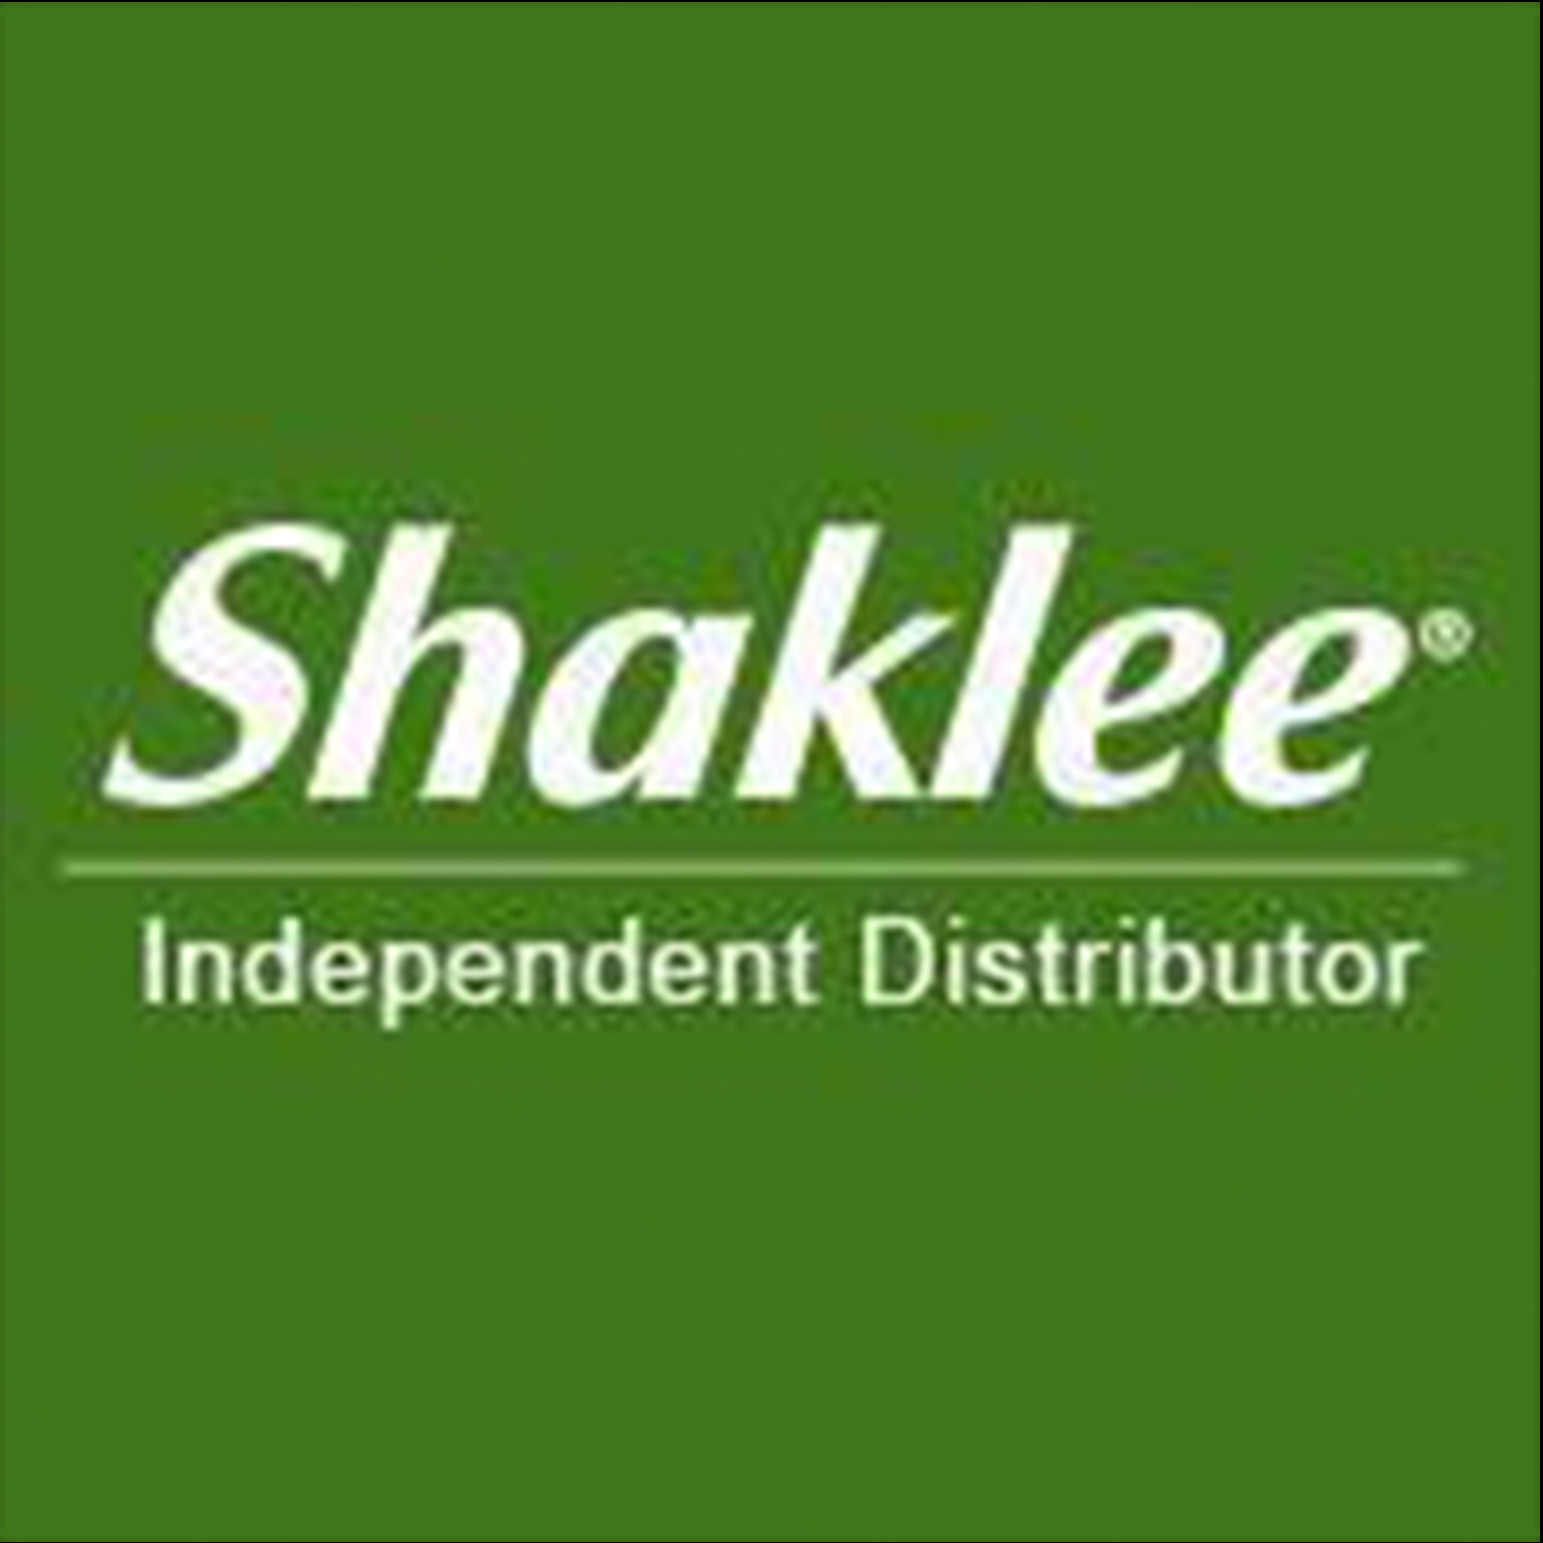 Shaklee Independent Distributor - Richard Fox